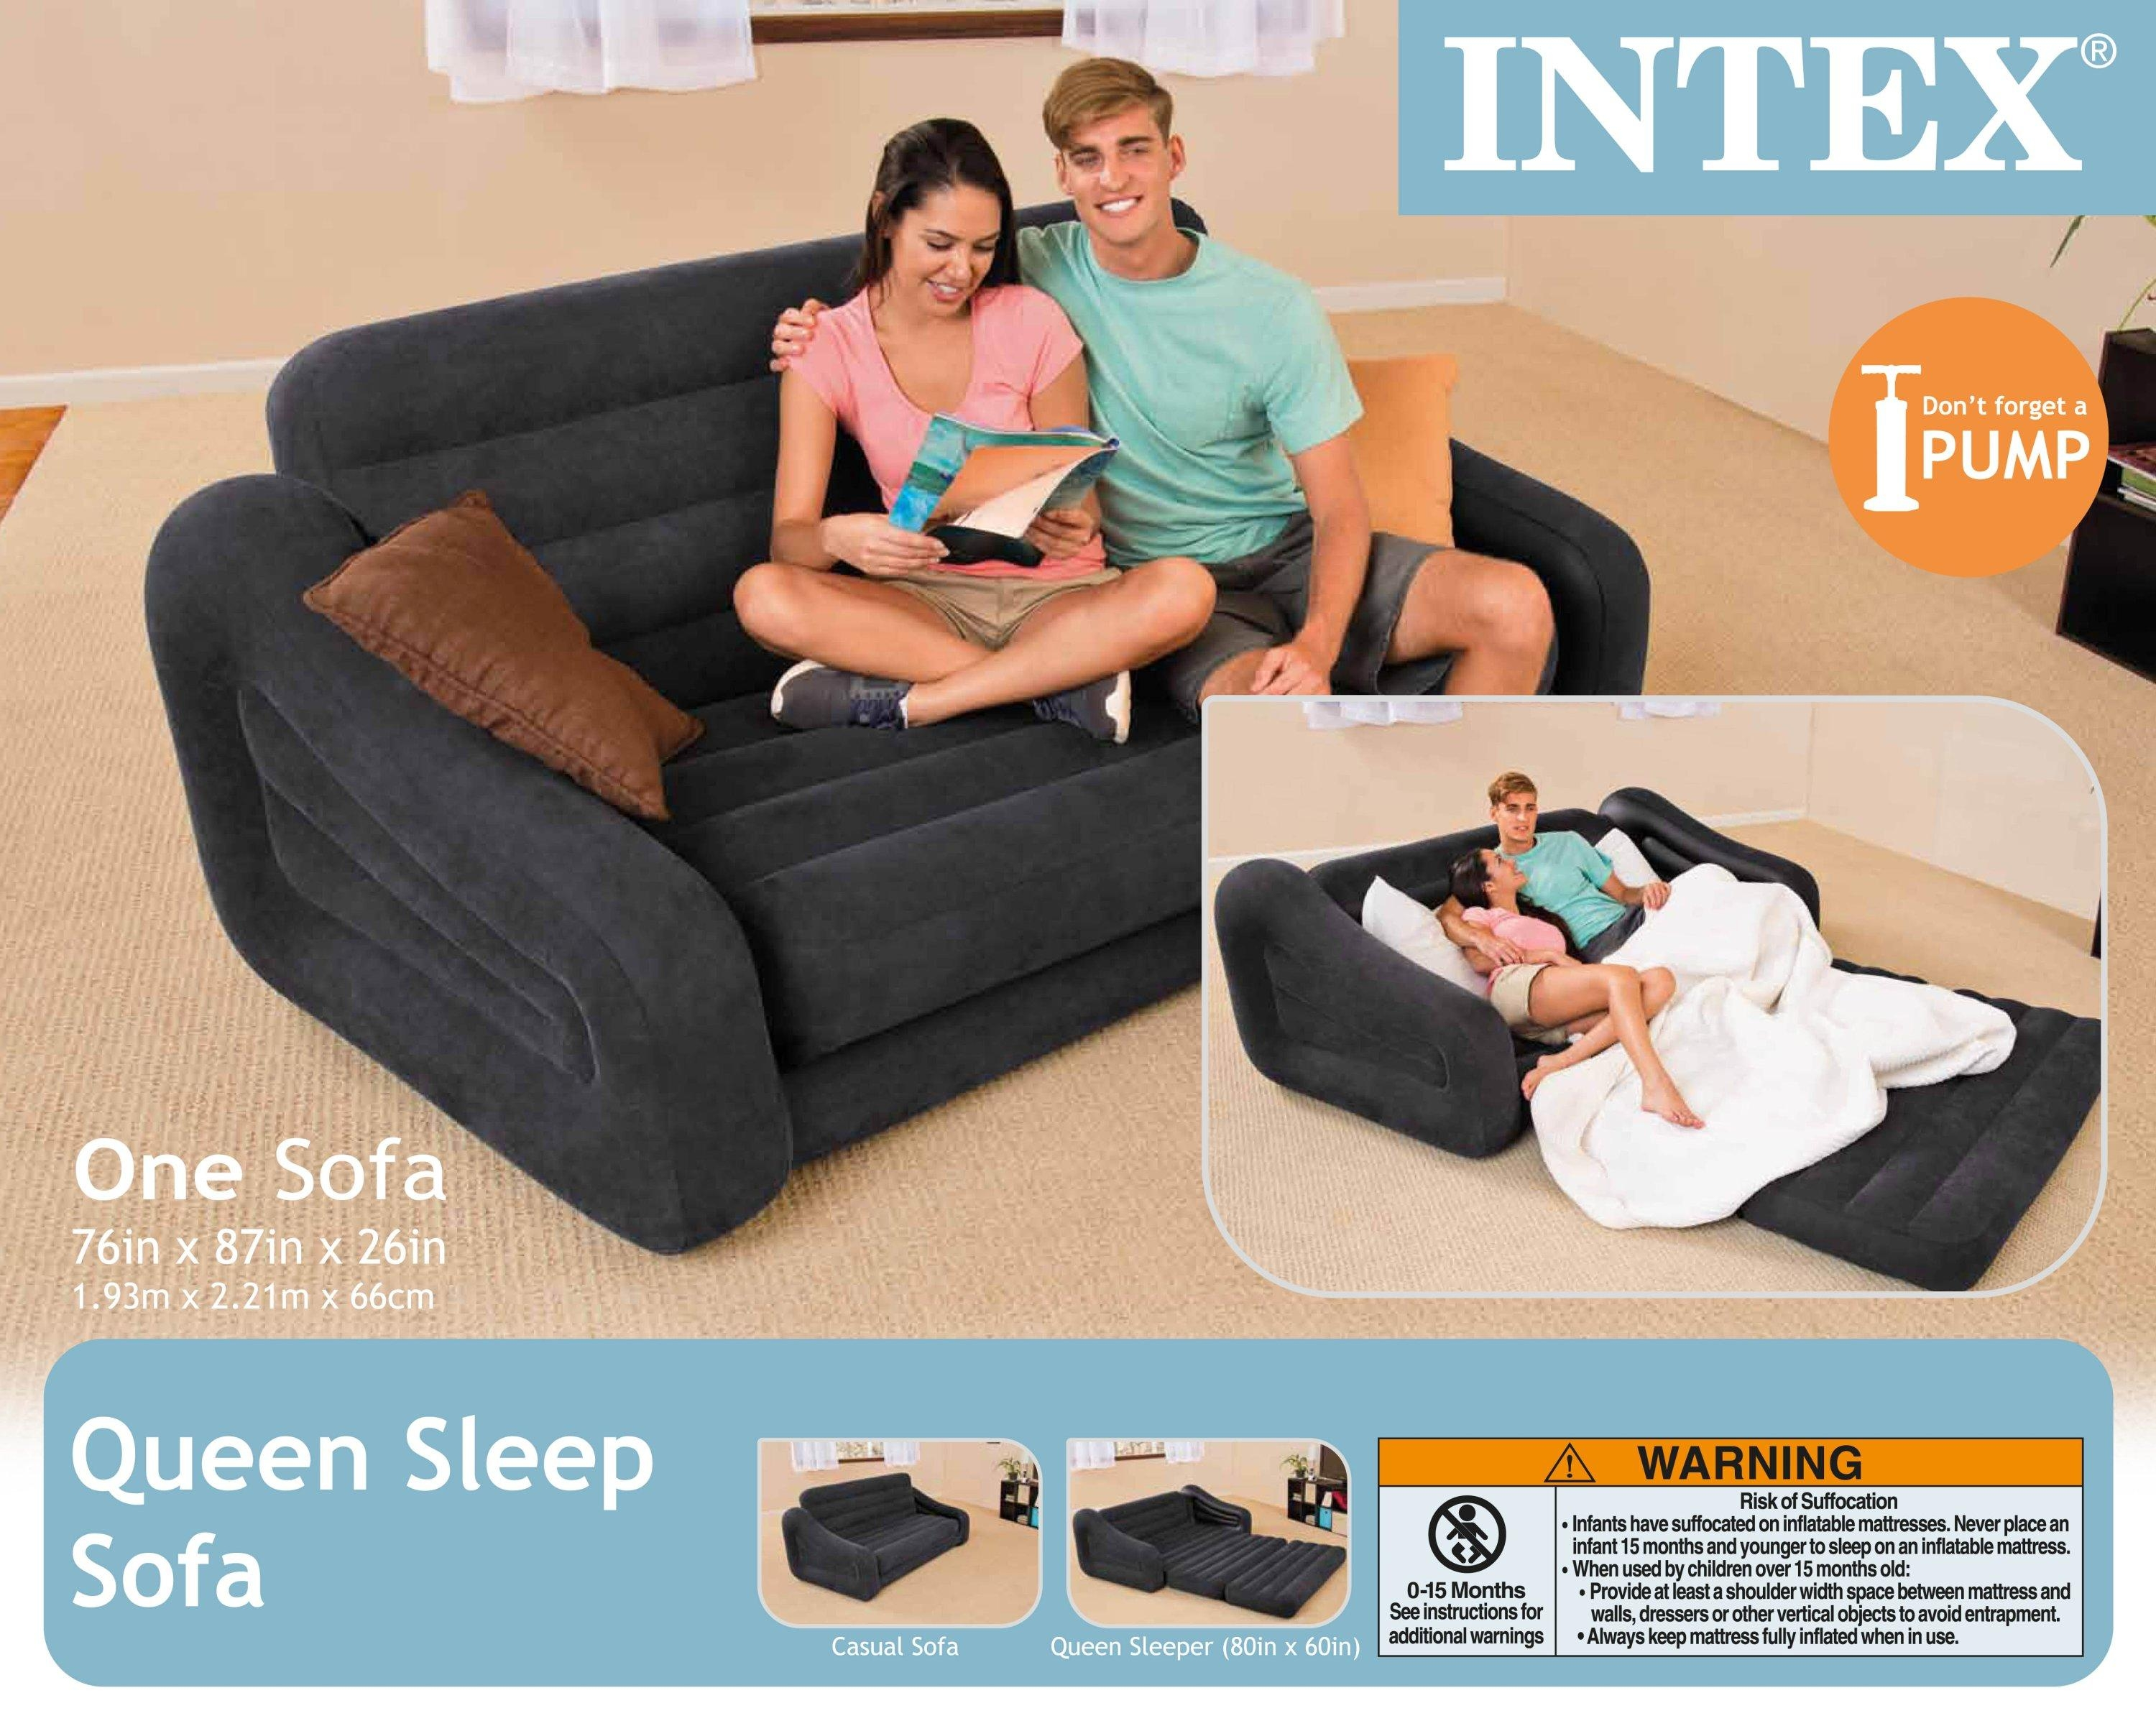 Featured Image of Intex Queen Sleeper Sofas